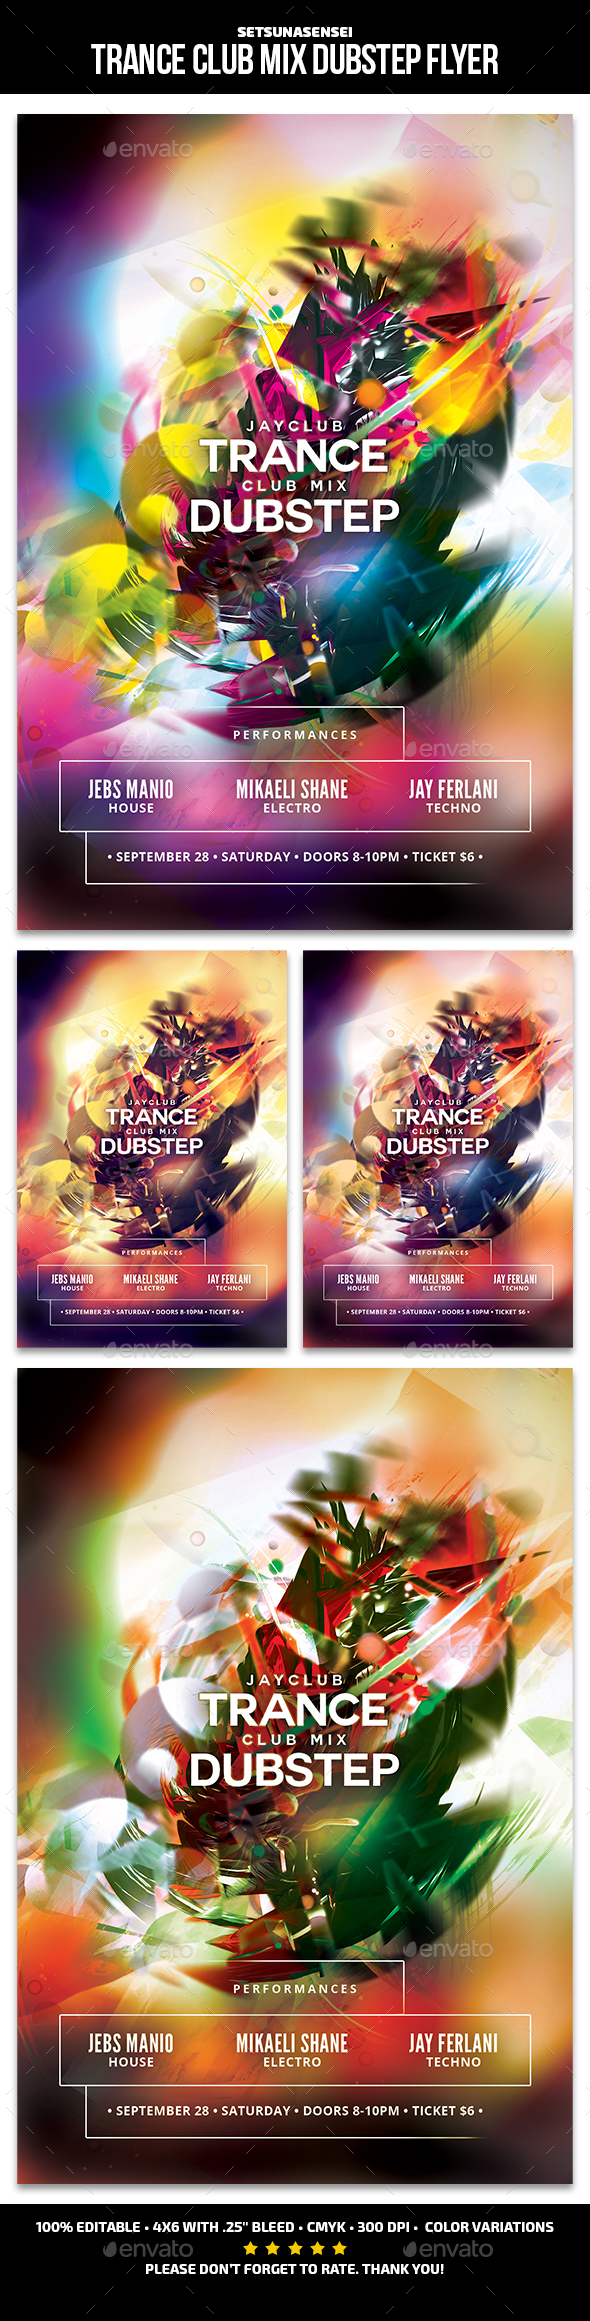 Trance Club Mix Dubstep Flyer - Clubs & Parties Events